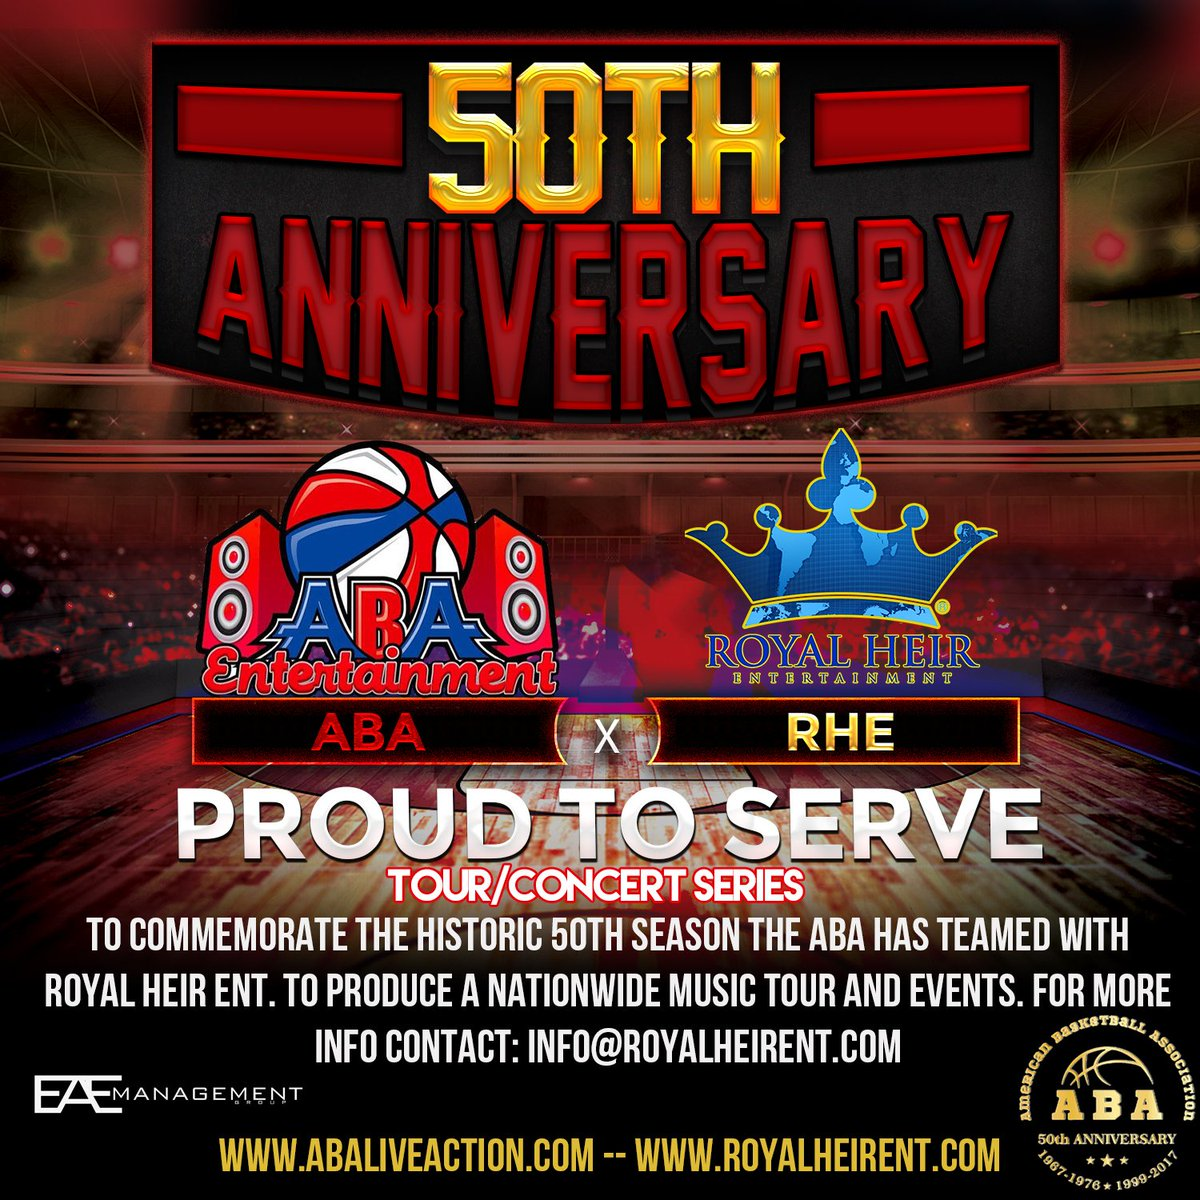 Get ready for an awesome announcement regarding the first date of the @ABAMedia_Ent x @RoyalHeirEnt #basketball tour https://t.co/NJTBjUOUQJ